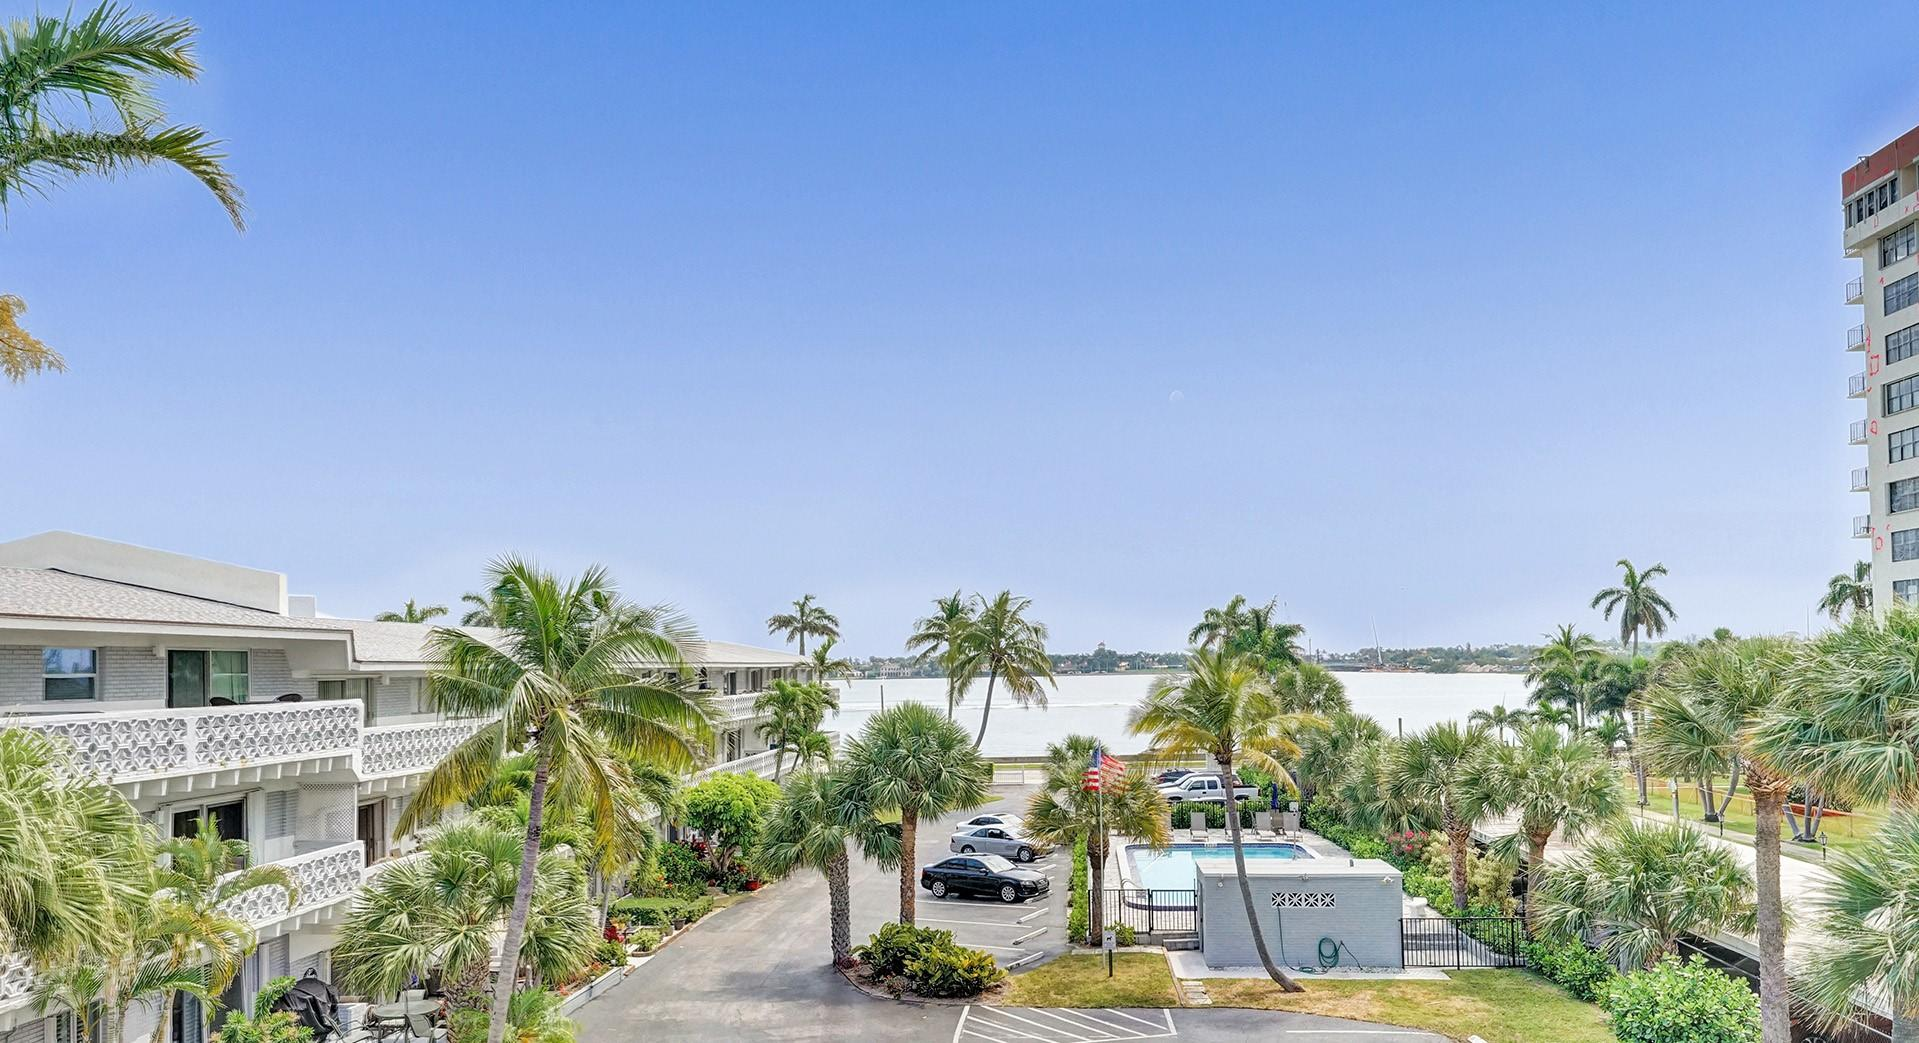 Hidden Gem located along the Intracoastal Waterway! Enjoy amazing views of the Intracoastal and Palm Beach Island from this light and bright updated top floor unit. Features include; hurricane impact windows thru-out, a large private balcony, updated kitchen with quartz counter-tops, built-in wine cooler, custom white cabinetry with an extended bar/workspace area, stainless-steel appliances and an updated bath.  This unit also features lots of closet space with an additional exterior storage unit. Just minutes to the beach, downtown area with great shopping and restaurants.